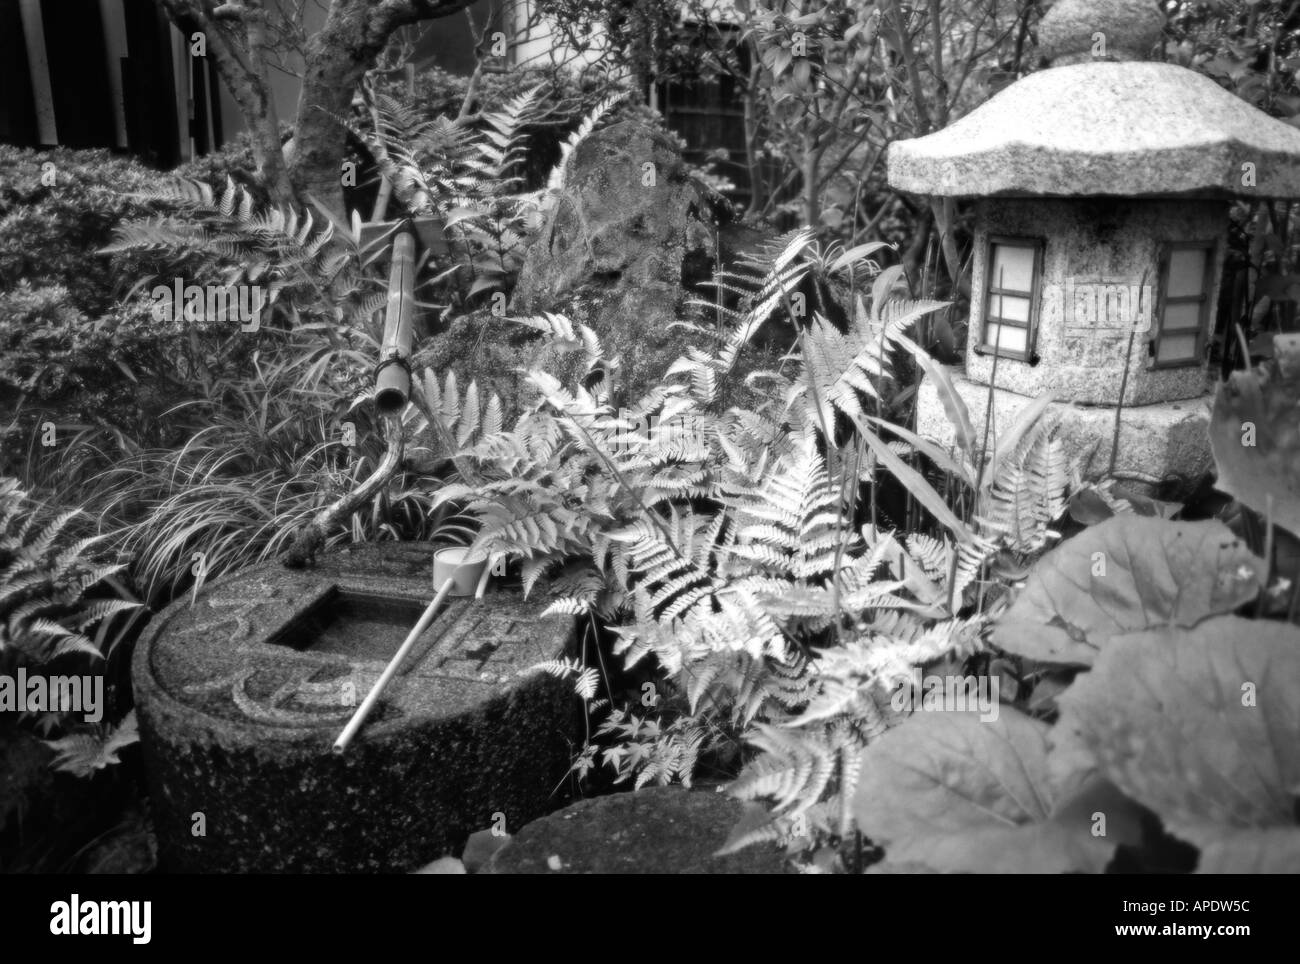 Lush grounds of a local ryokan Nara prefecture Japan Rendred in Infra Red style black and white Mysterious effect - Stock Image